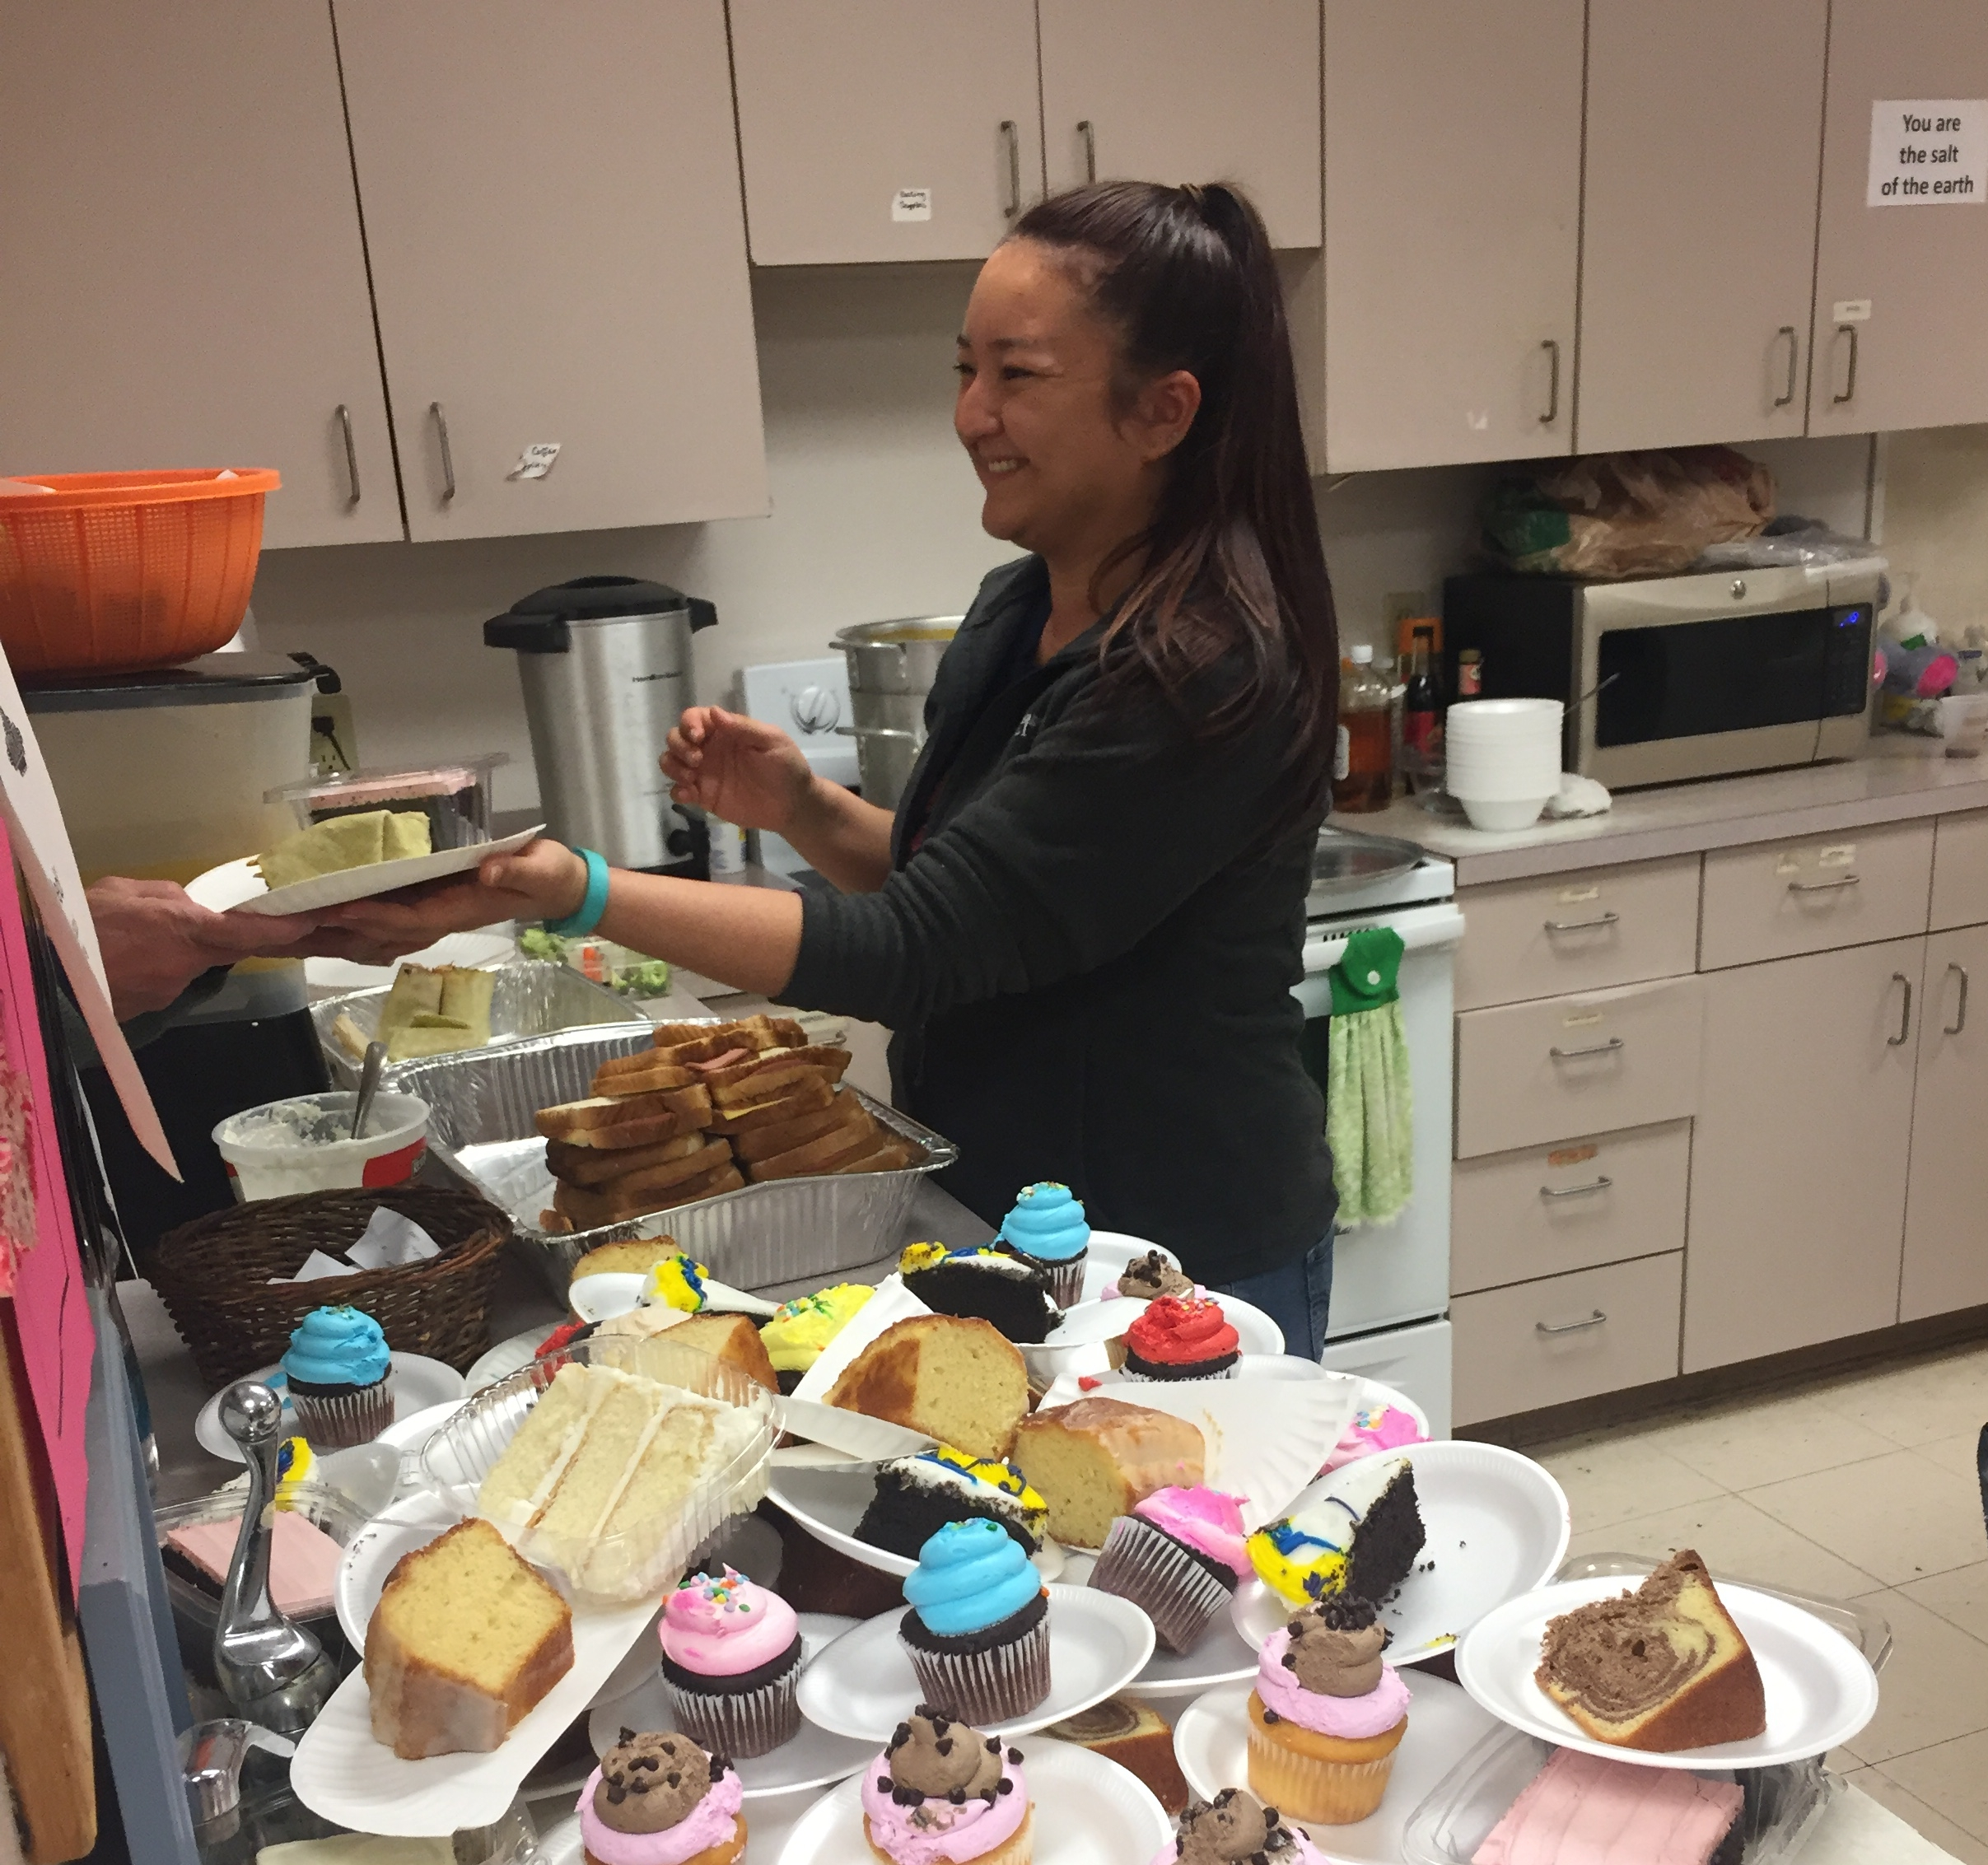 Crisis Ministry volunteer Jenny Brooks serves dessert to a client during a recent soup kitchen lunch.